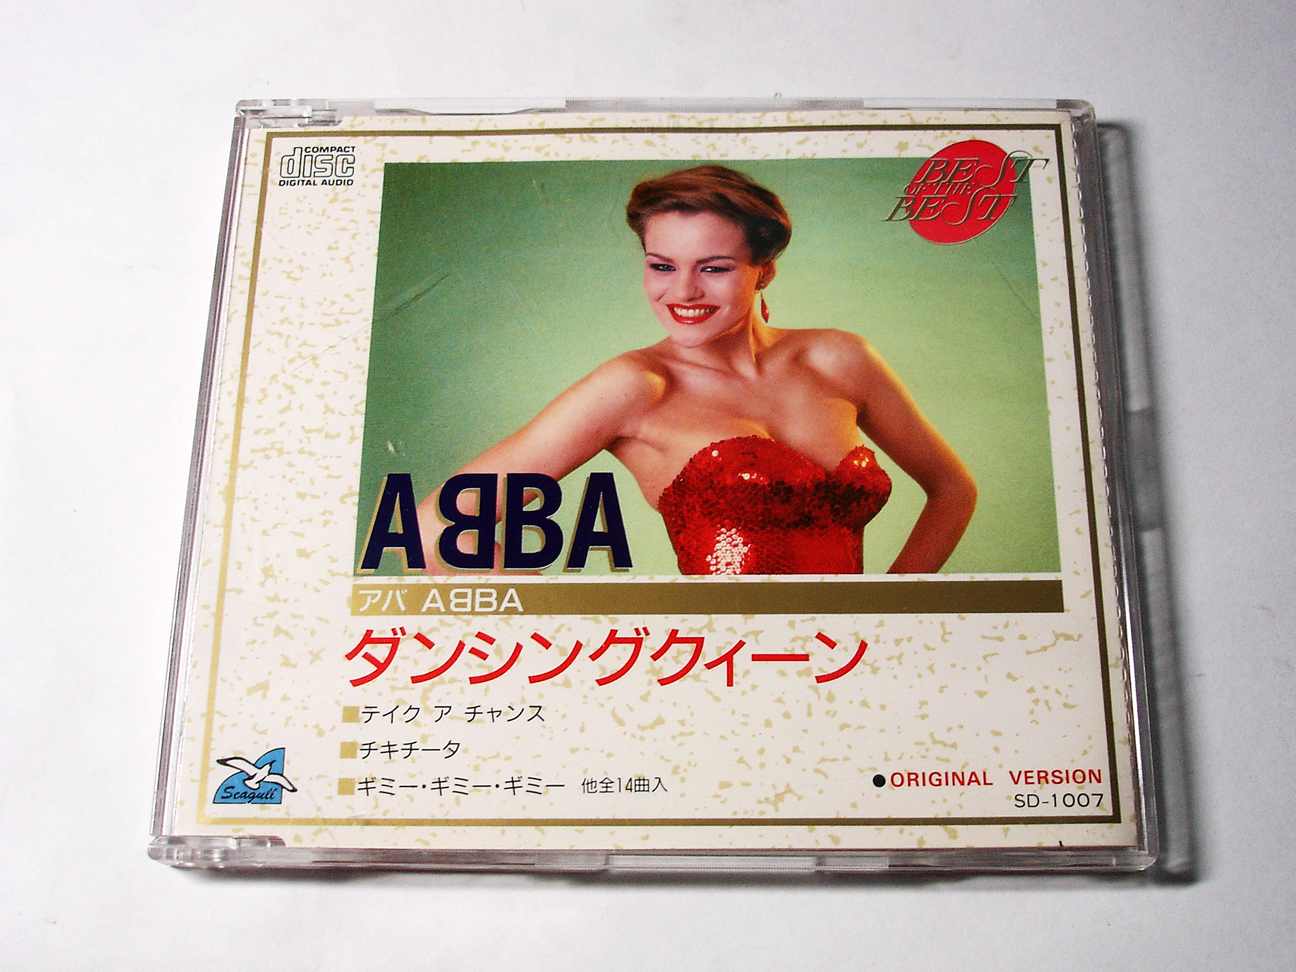 (compilation) Best Of The Best – Abba